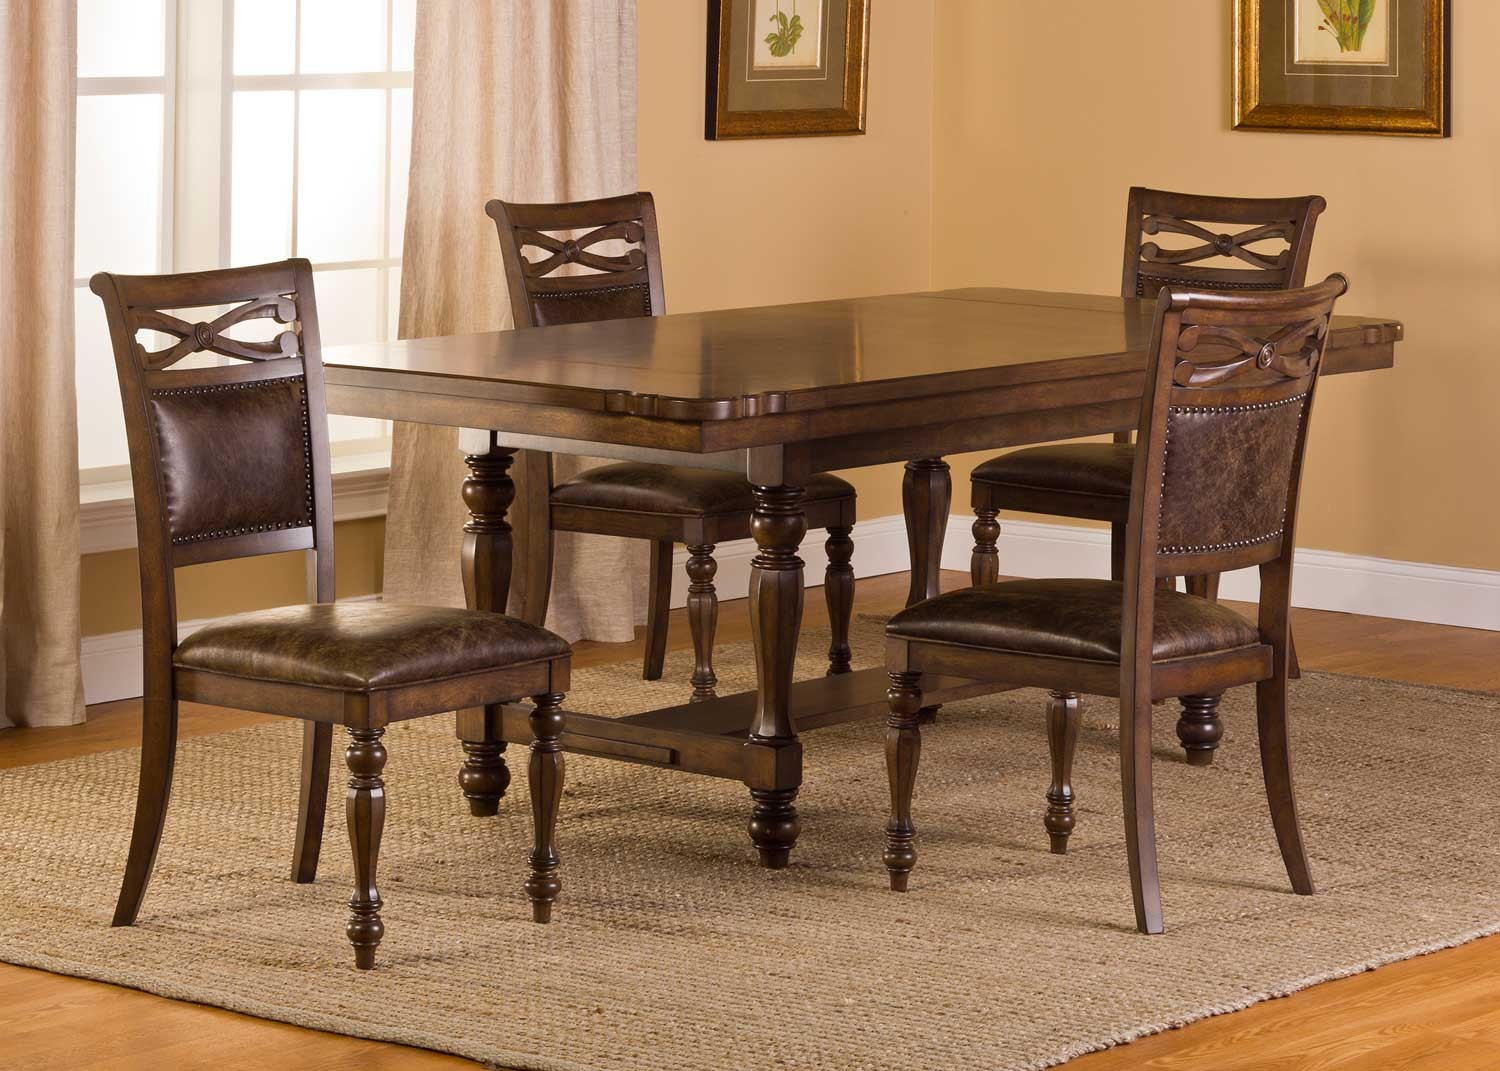 Hillsdale Seaton Springs 5 pc Dining Set - Weathered Walnut